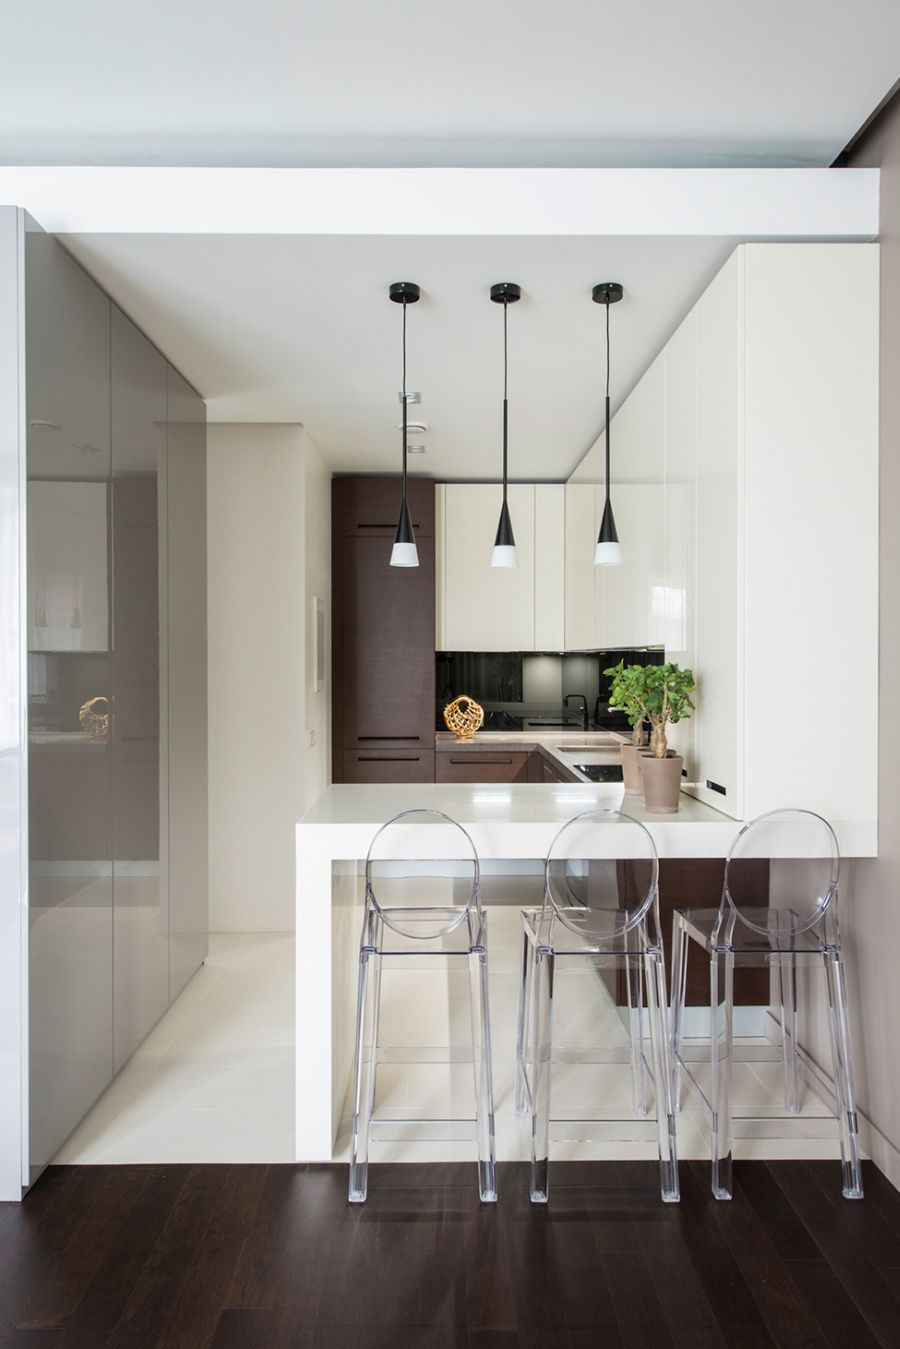 Kitchen of the minimalst home